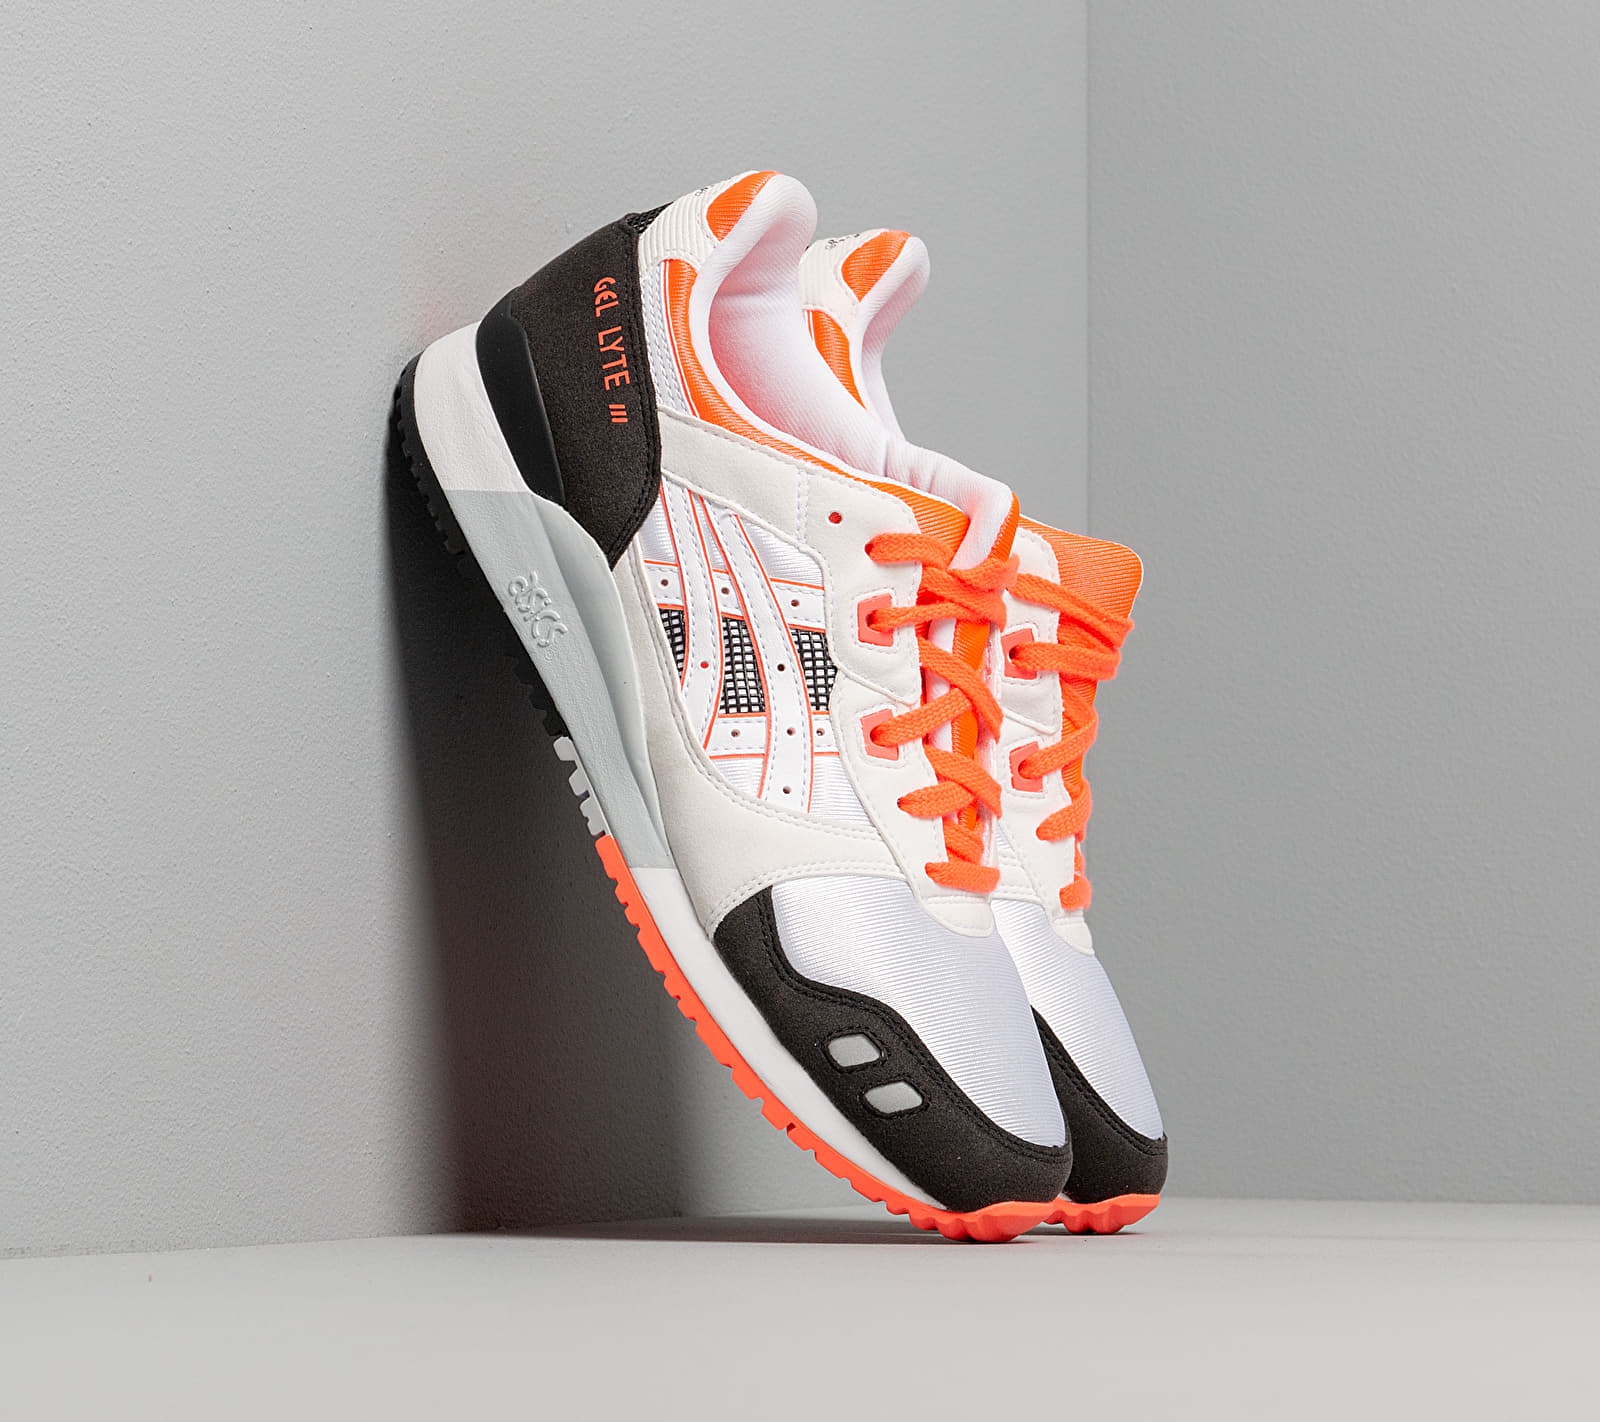 Asics GEL-LYTE III OG White/ Flash Coral EUR 40.5